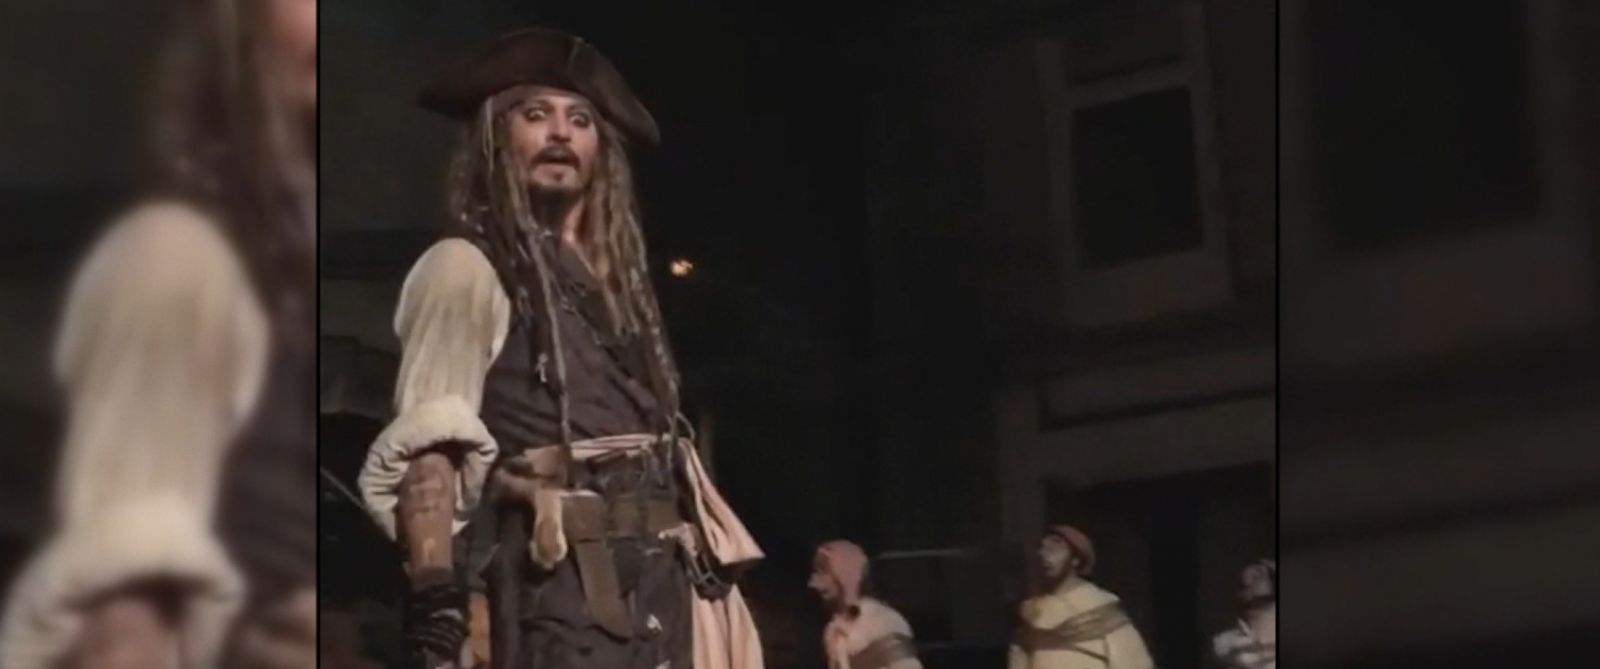 VIDEO: Johnny Depp, Captain Jack Sparrow himself, surprises riders on the Pirates of the Caribbean attraction at Disneyland.